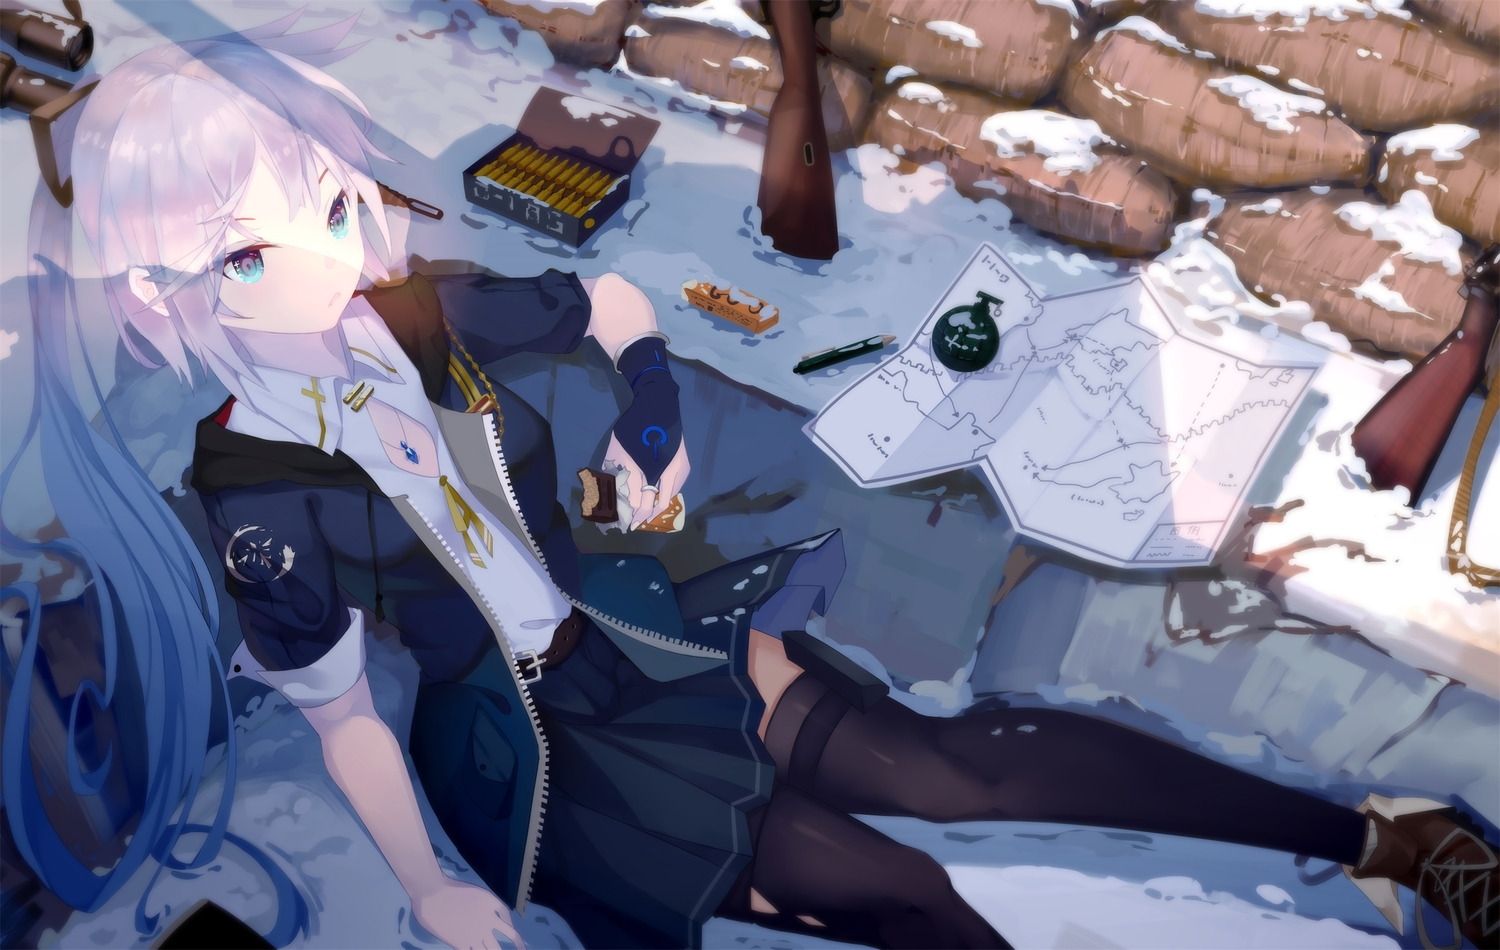 aqua_eyes food garter_belt gloves gray_hair gun jpeg_artifacts .l.l long_hair necklace original paper ponytail skirt thighhighs torn_clothes weapon winter